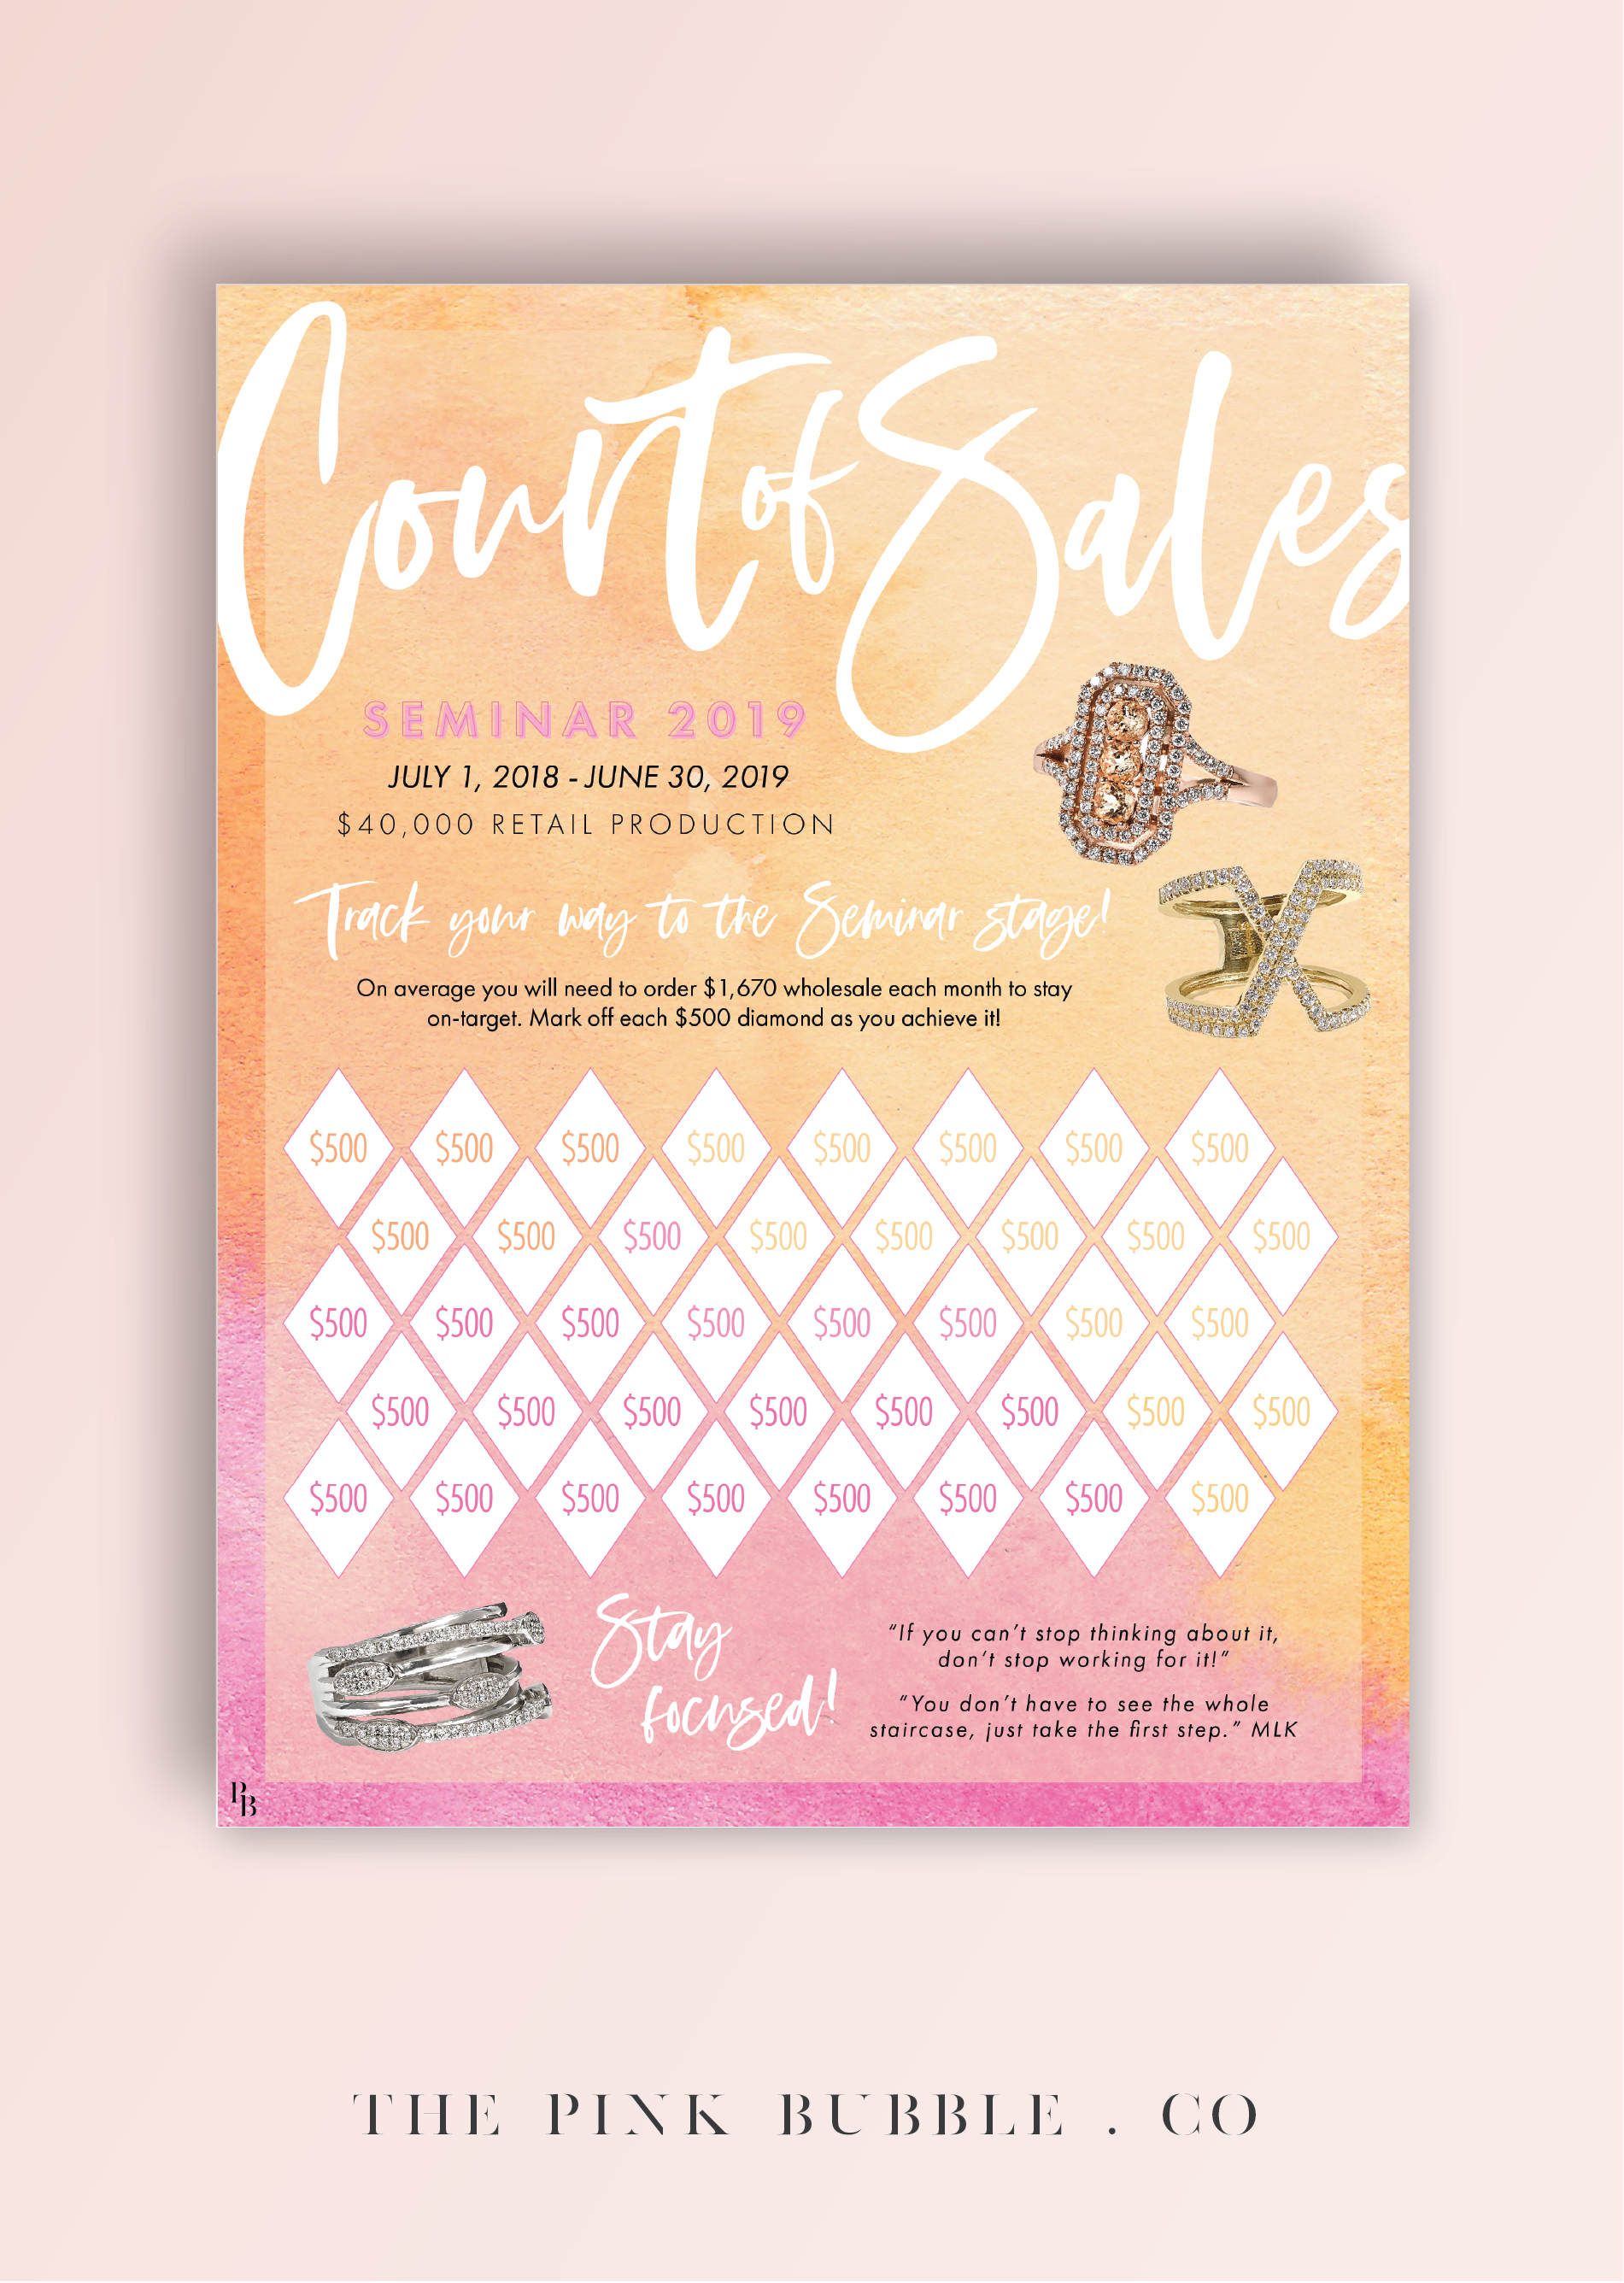 Mary Kay Sales Ideas For June 2020 Seminar Year End Mary Kay Court of Sales 2019 Tracking Sheet! Track your way to the